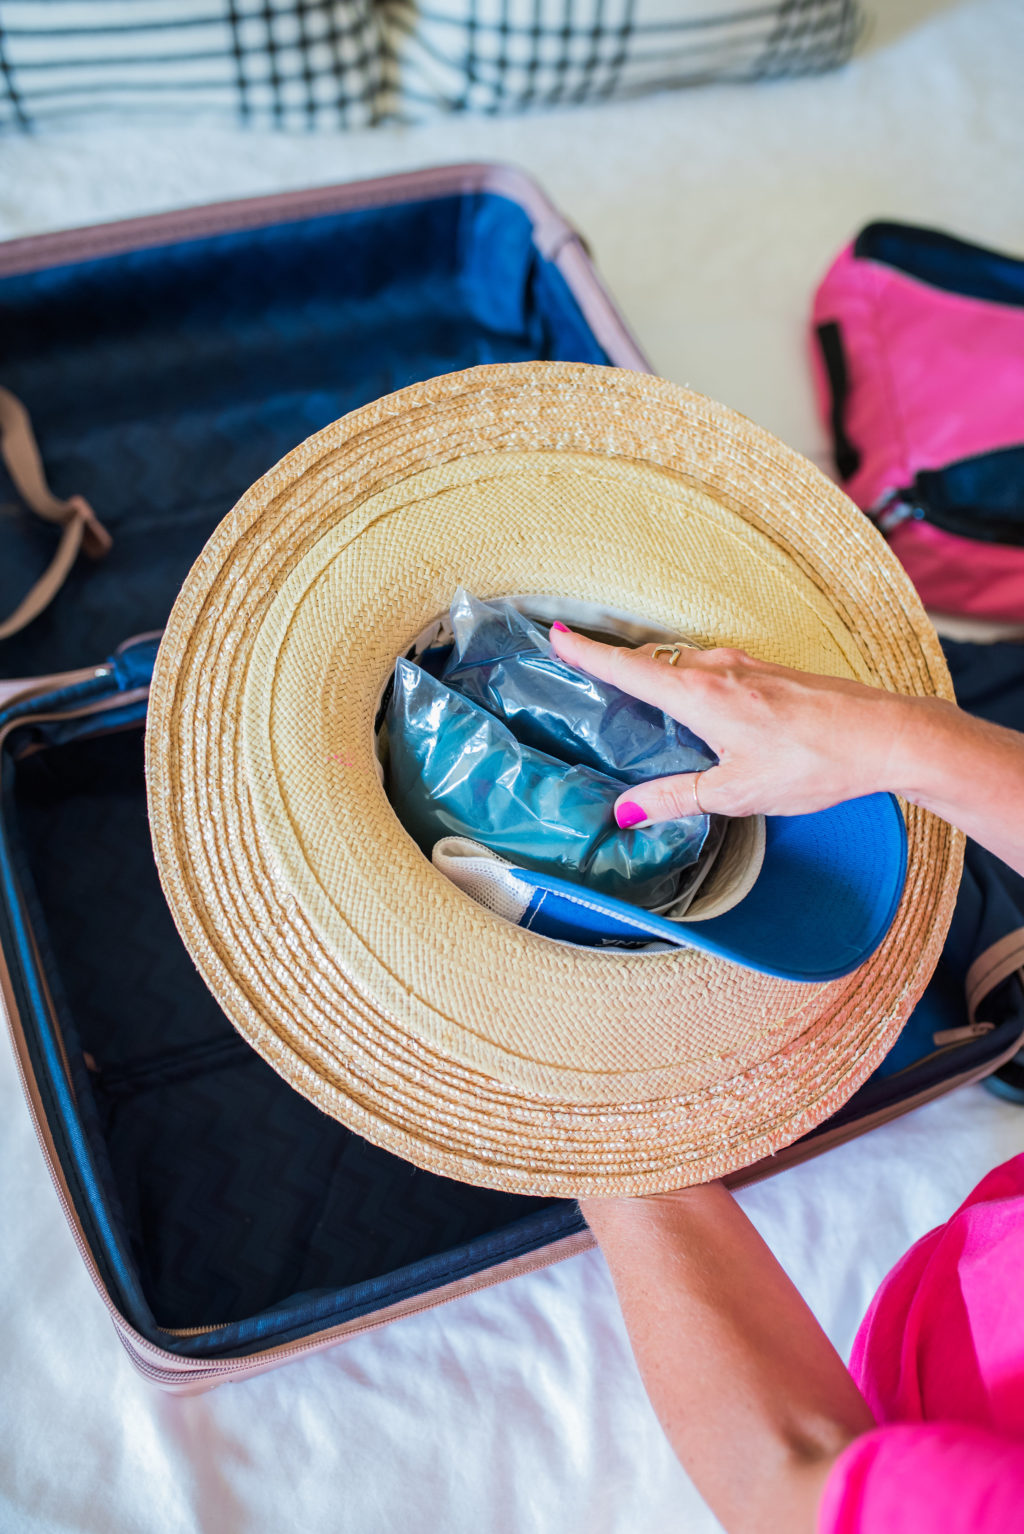 packing multiple hats in a carry on suitcase for travel